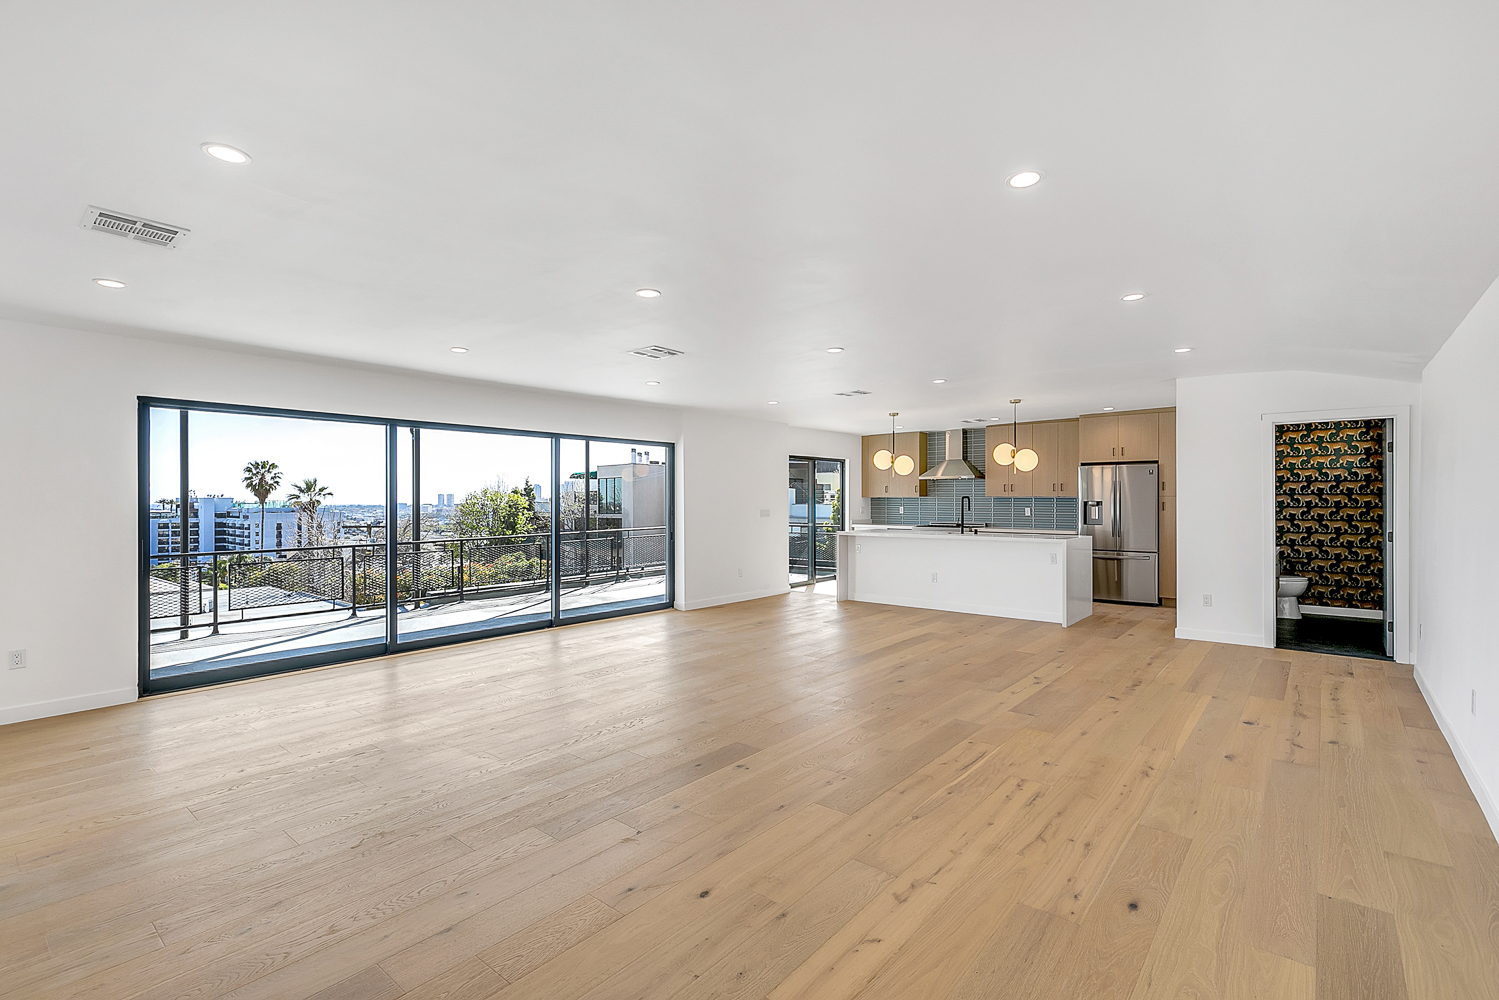 Showstopping Penthouse Unit: 3BR/ 3.5BA with an Enormous Balcony overlooking all of Los Angeles